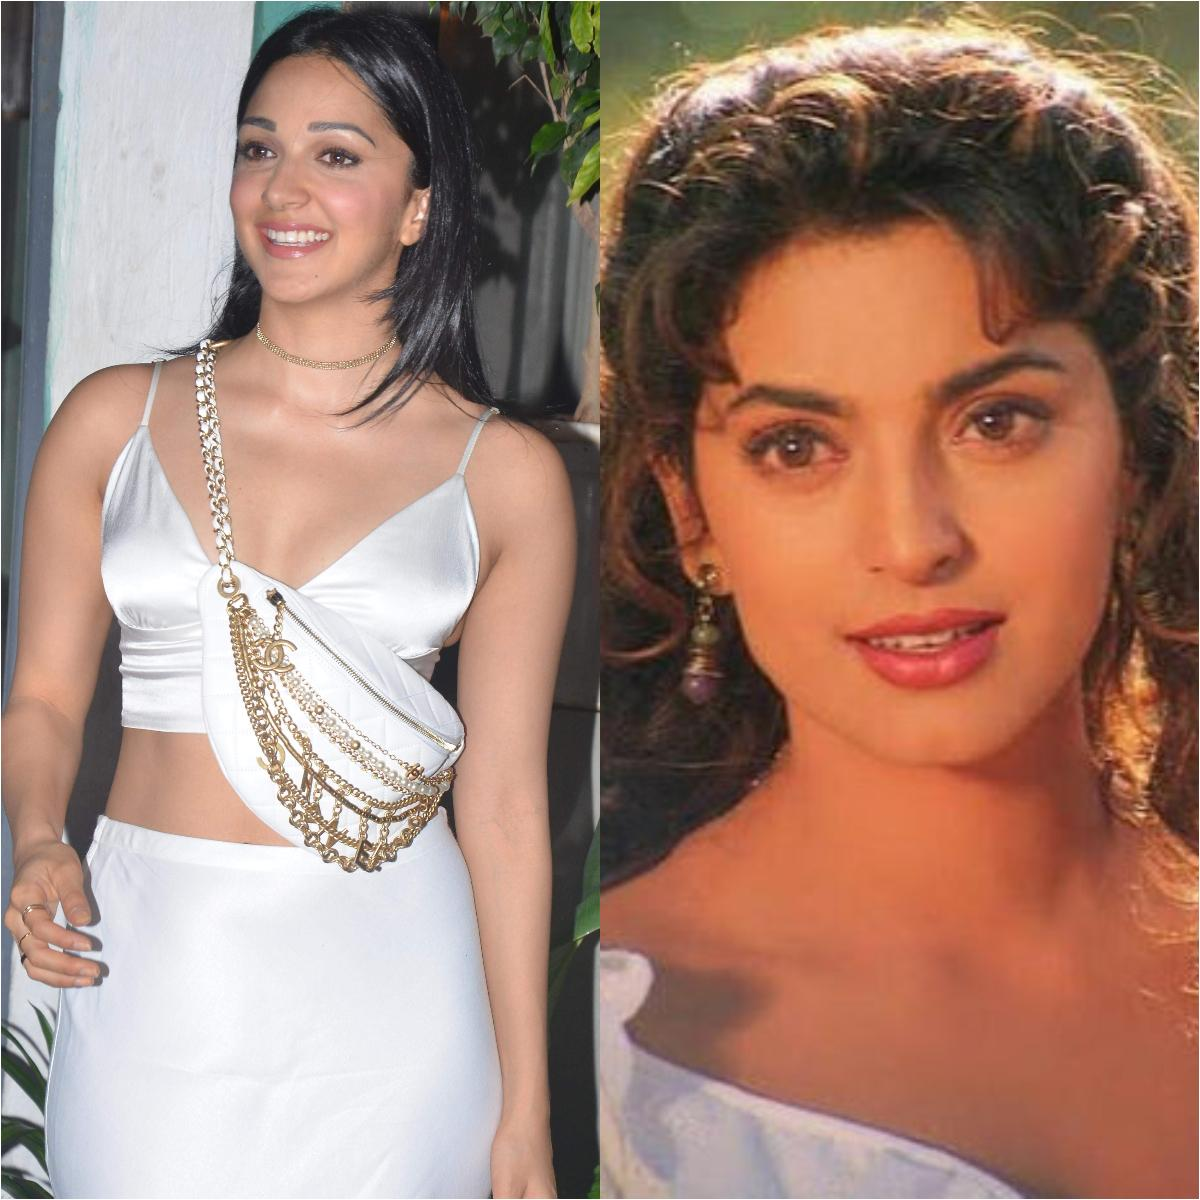 Kiara Advani and her deep rooted connections in Bollywood will ...